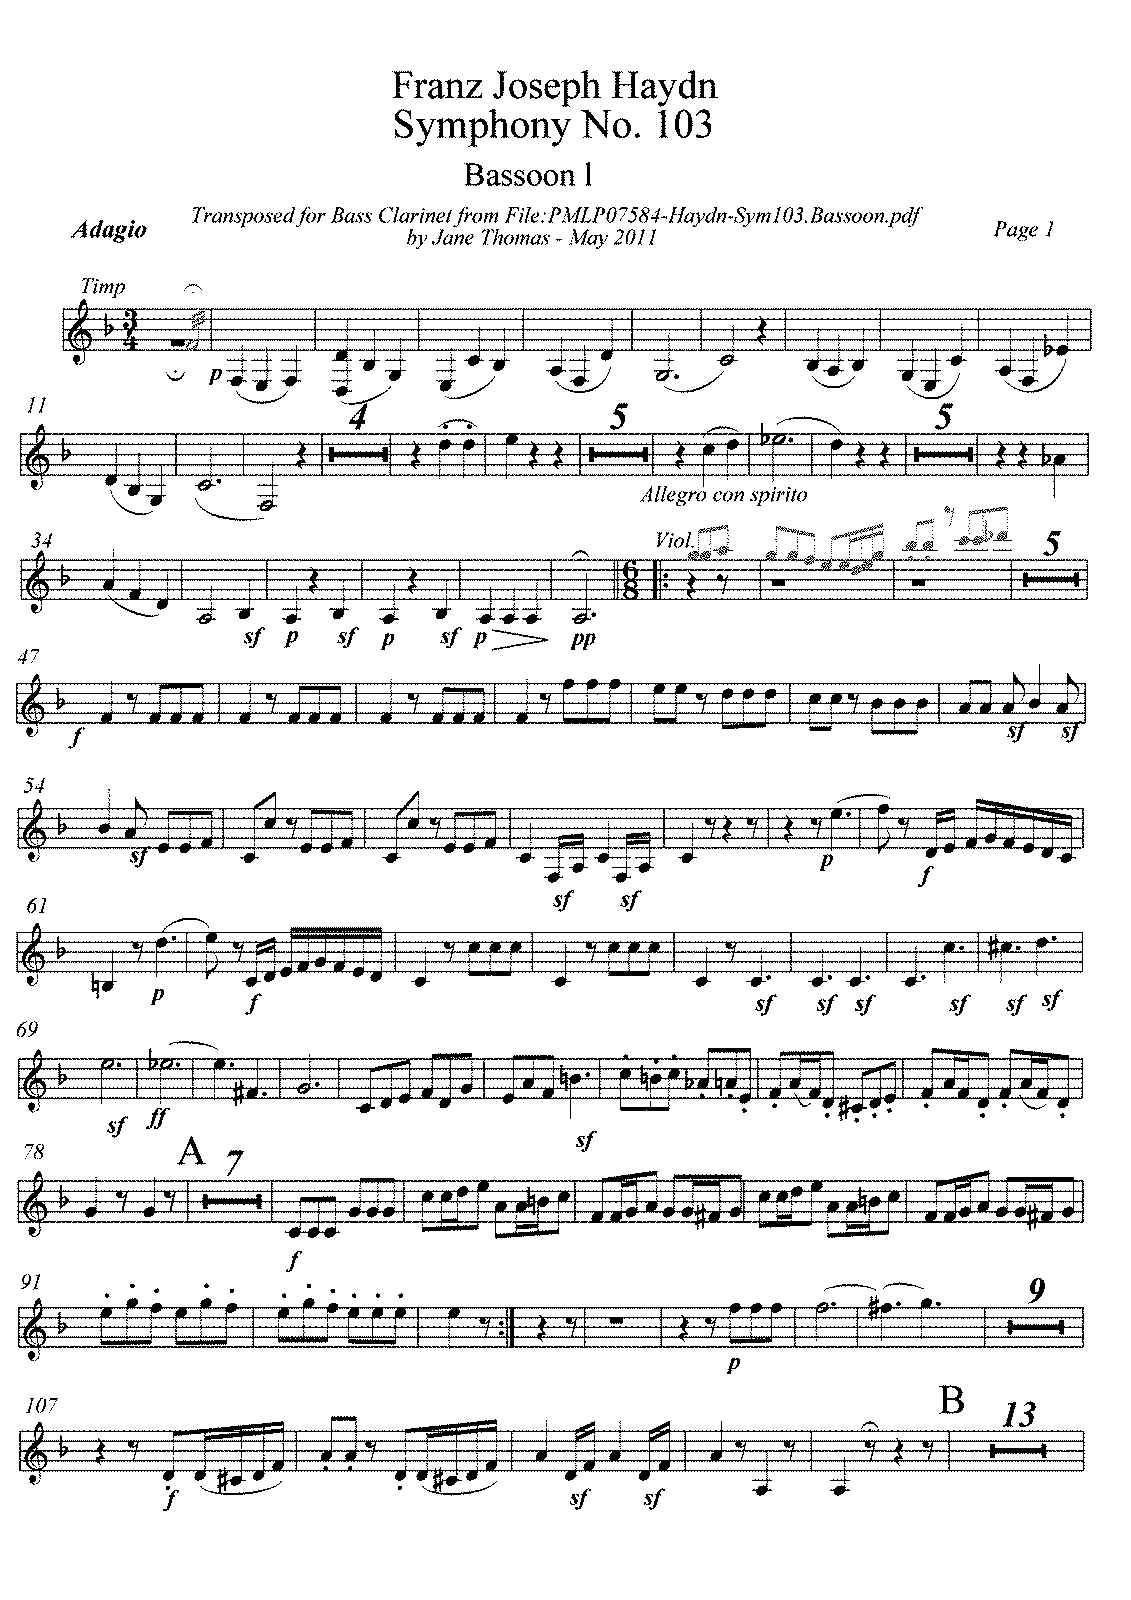 PMLP07584-Haydn-Symphony 103.Bassoon 1 transposed for Bass Clarinet.pdf